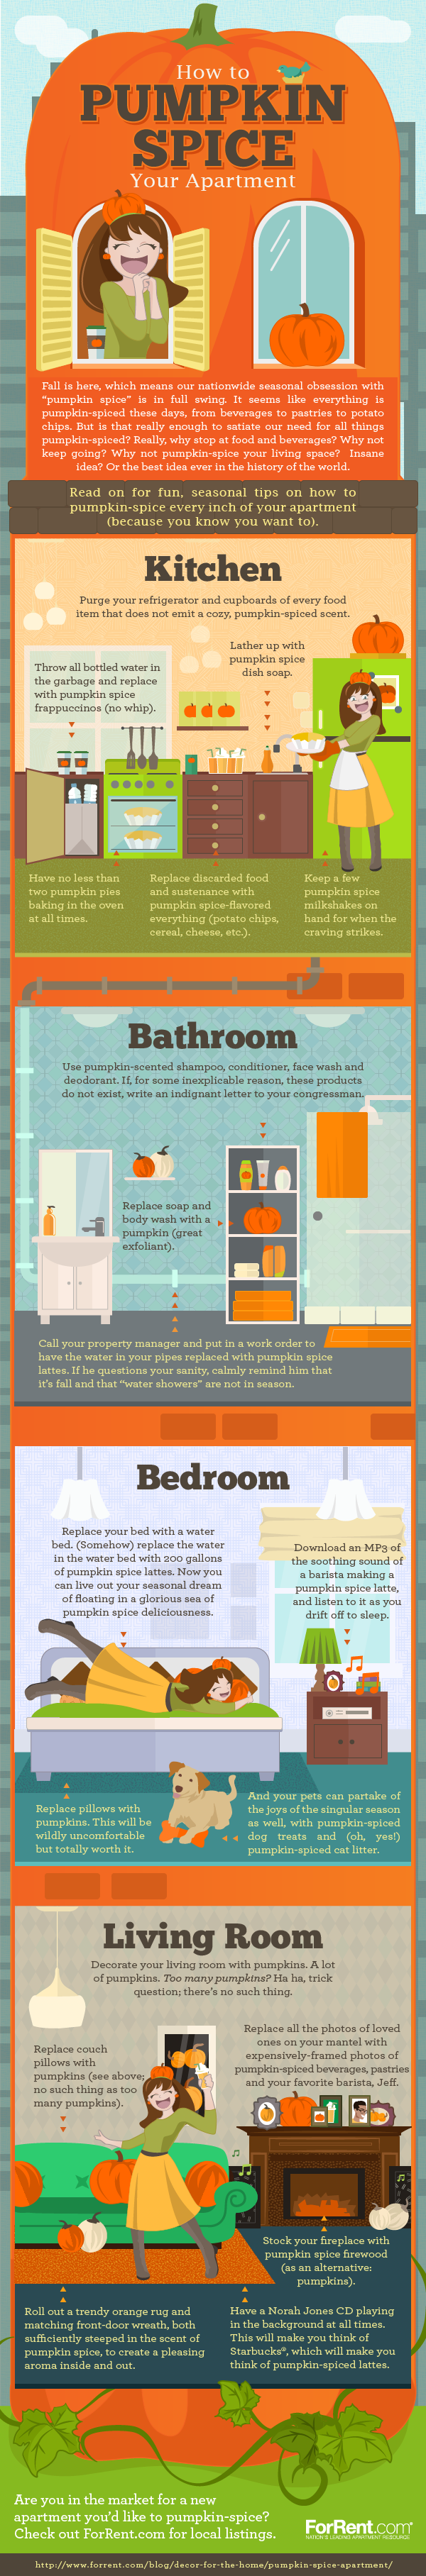 How to Pumpkin Spice Your Apartment